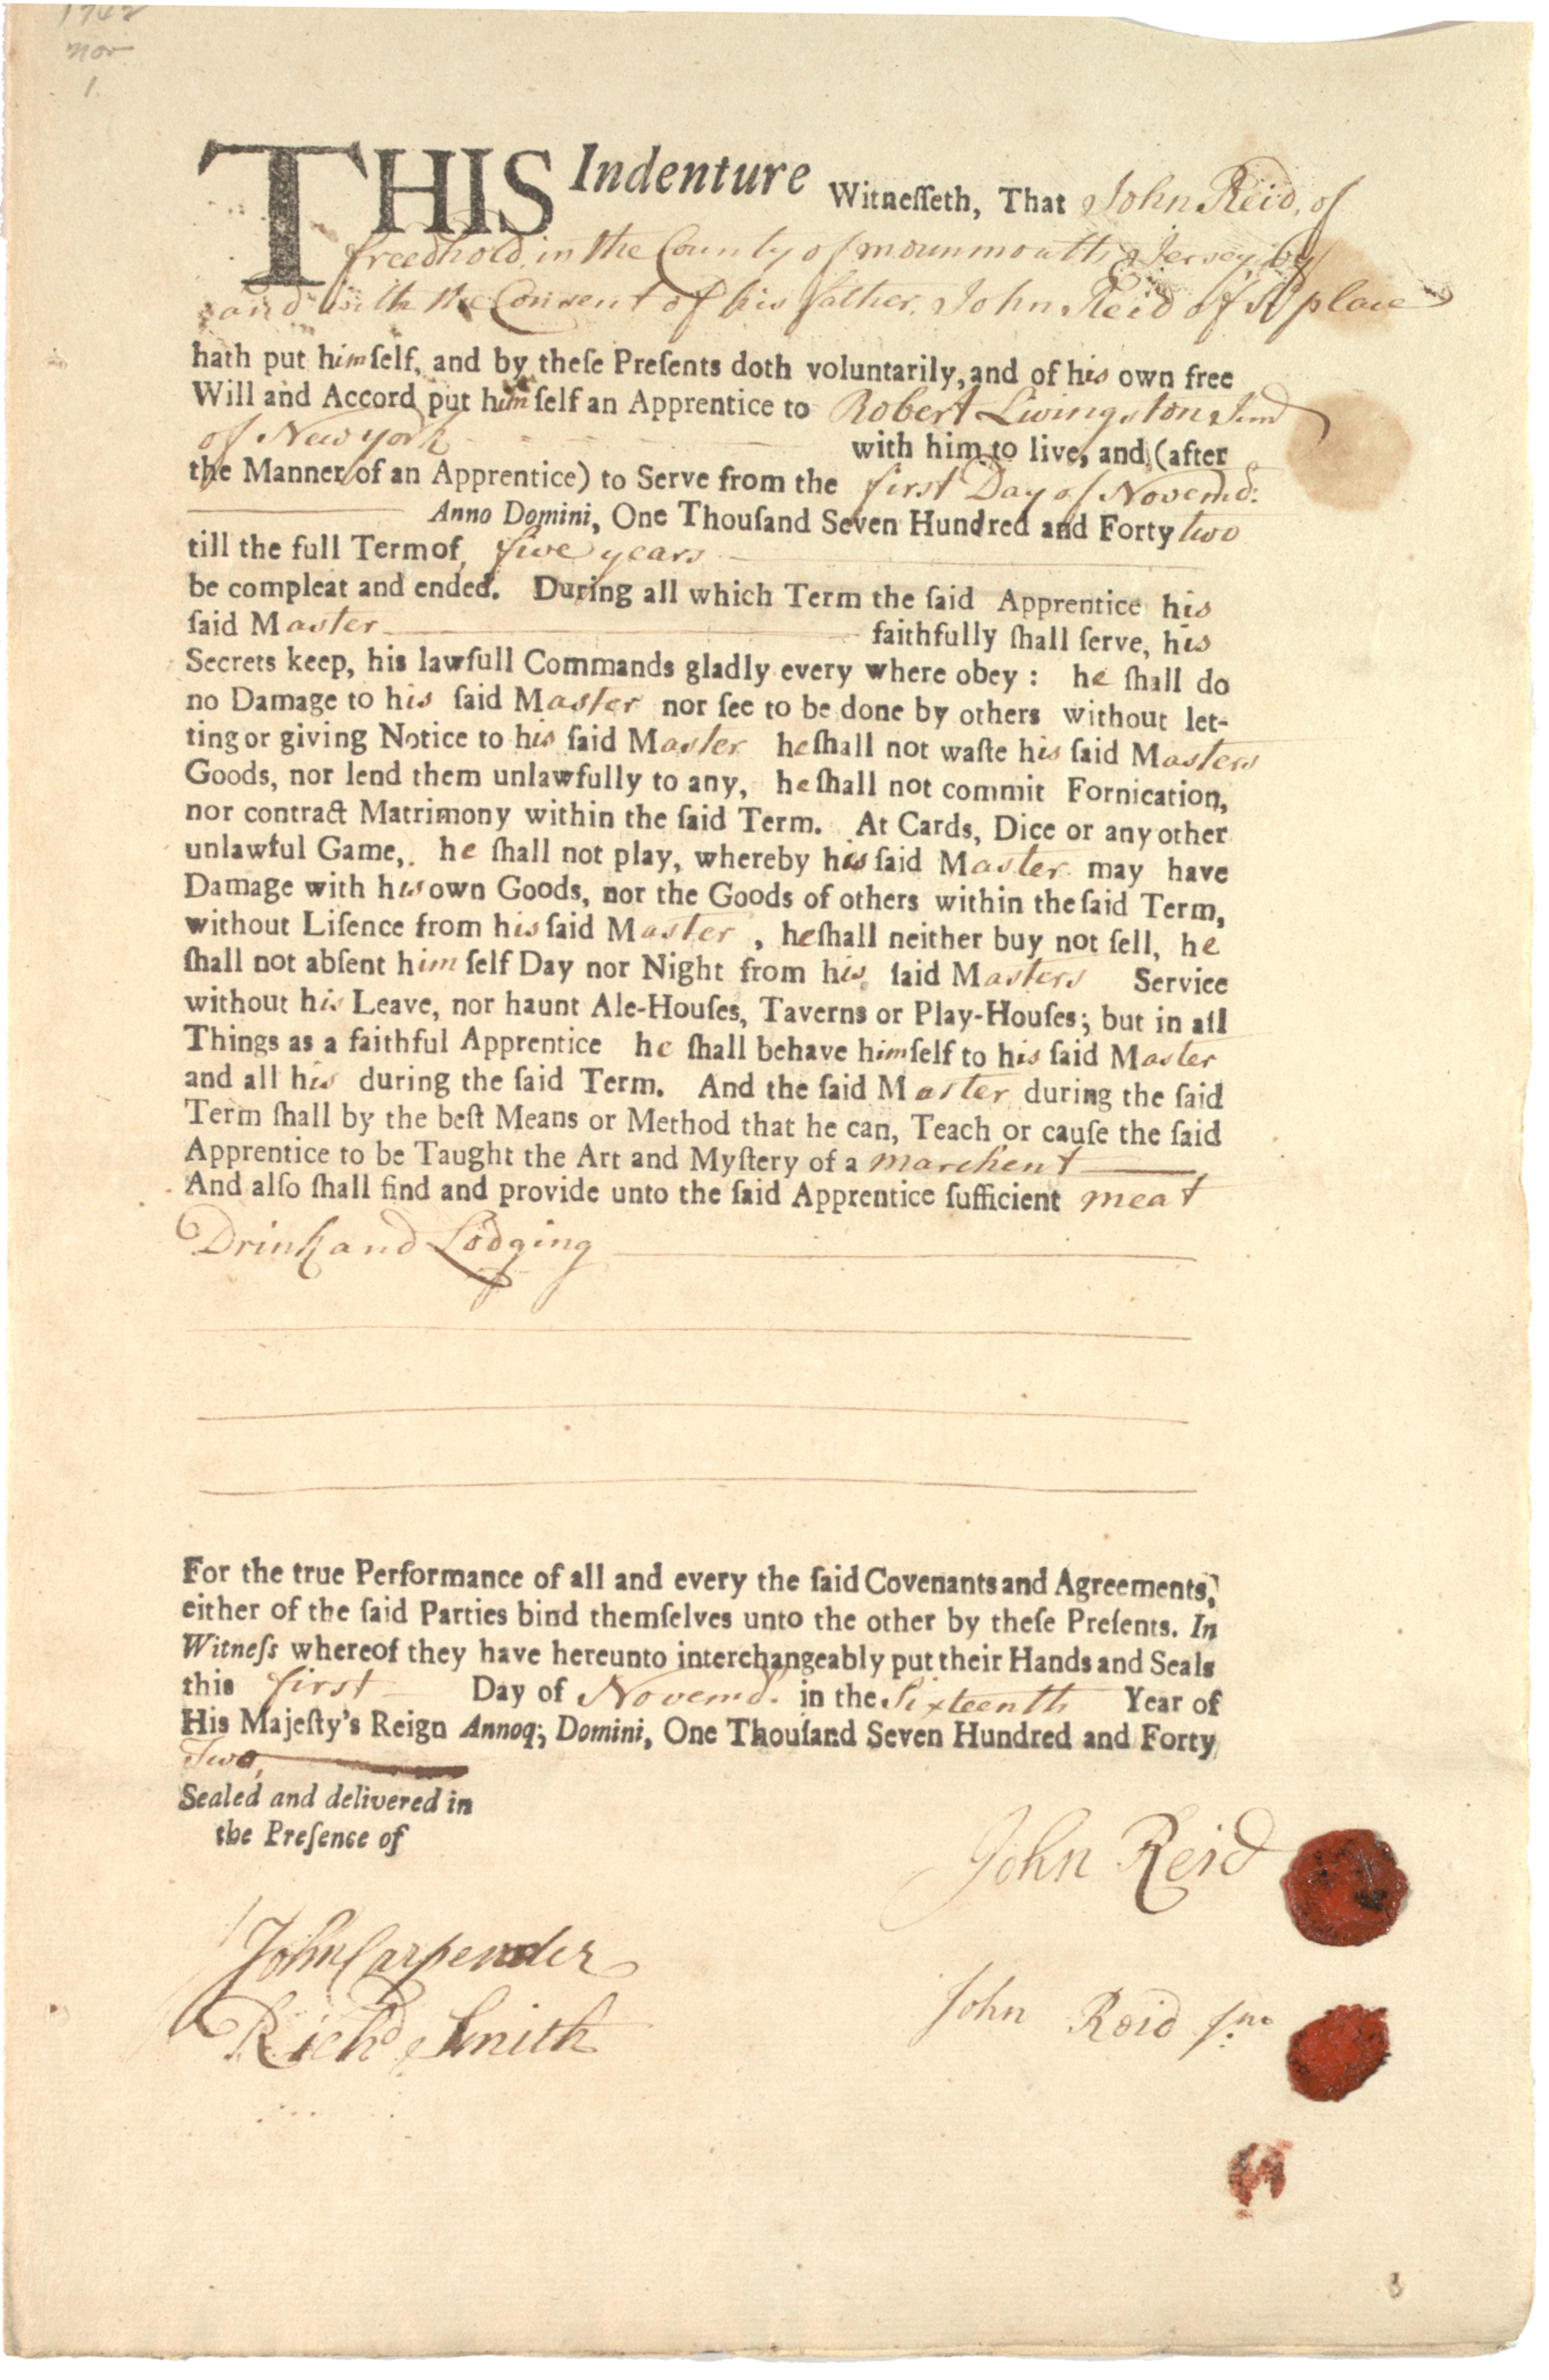 John Reid Jr., Indenture of apprenticeship with Robert Livingston Jr., 1742 (GLC